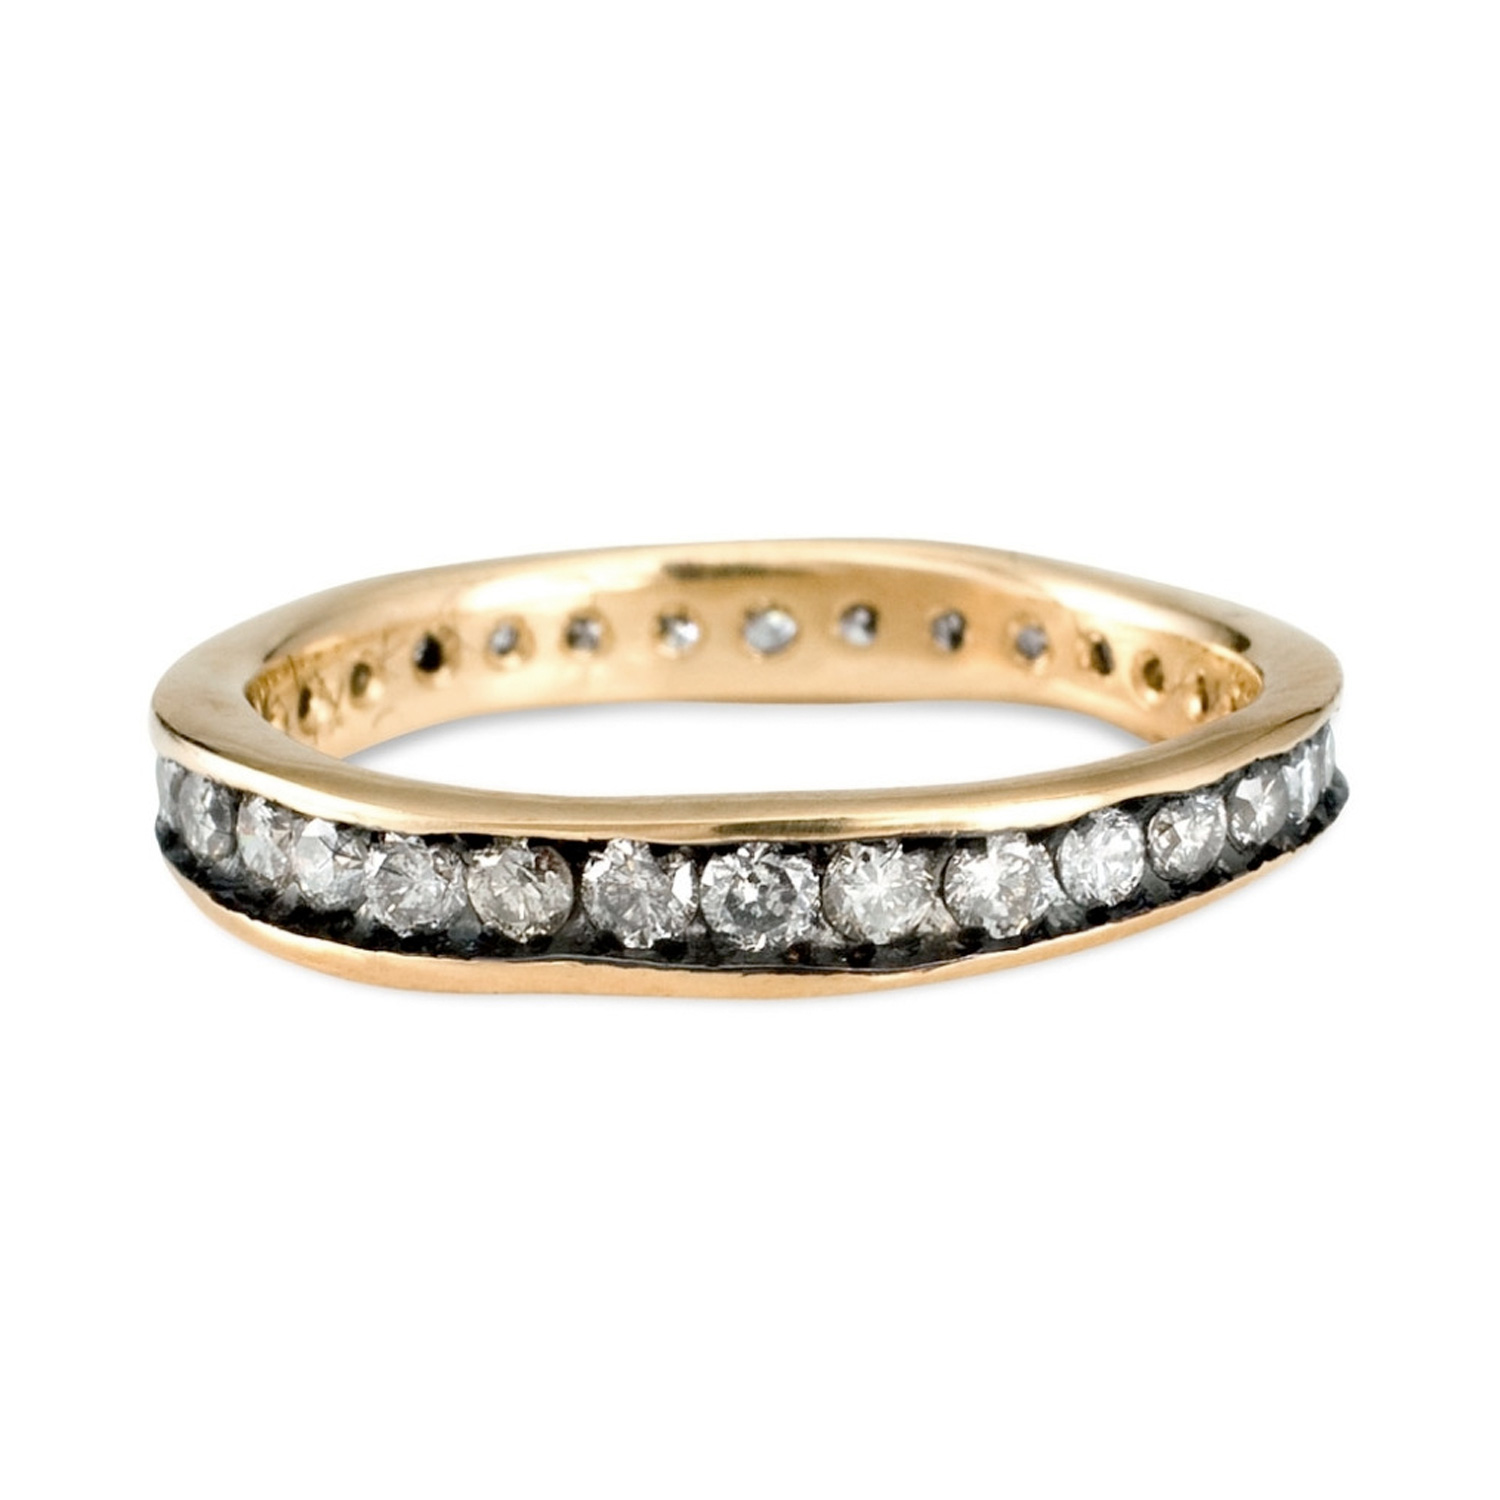 this eternity m ring an and alternating create to bands interesting baguette diamonds addition diamond round sets brilliant band shop full flynn